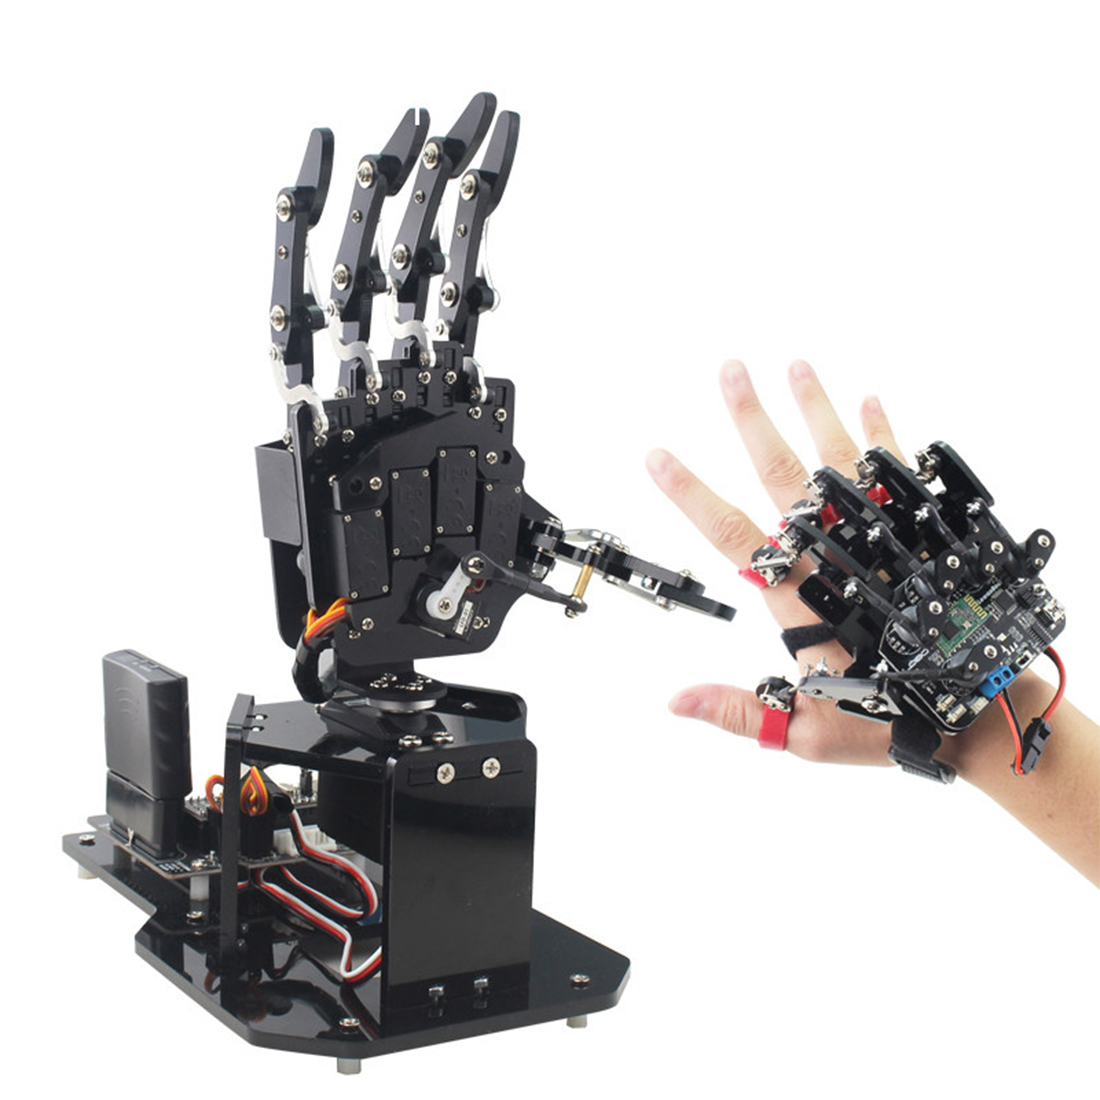 Programmable Robot Palm Bionic Open Source Palm With Body Induction Gloves For STM32 High Tech Toy